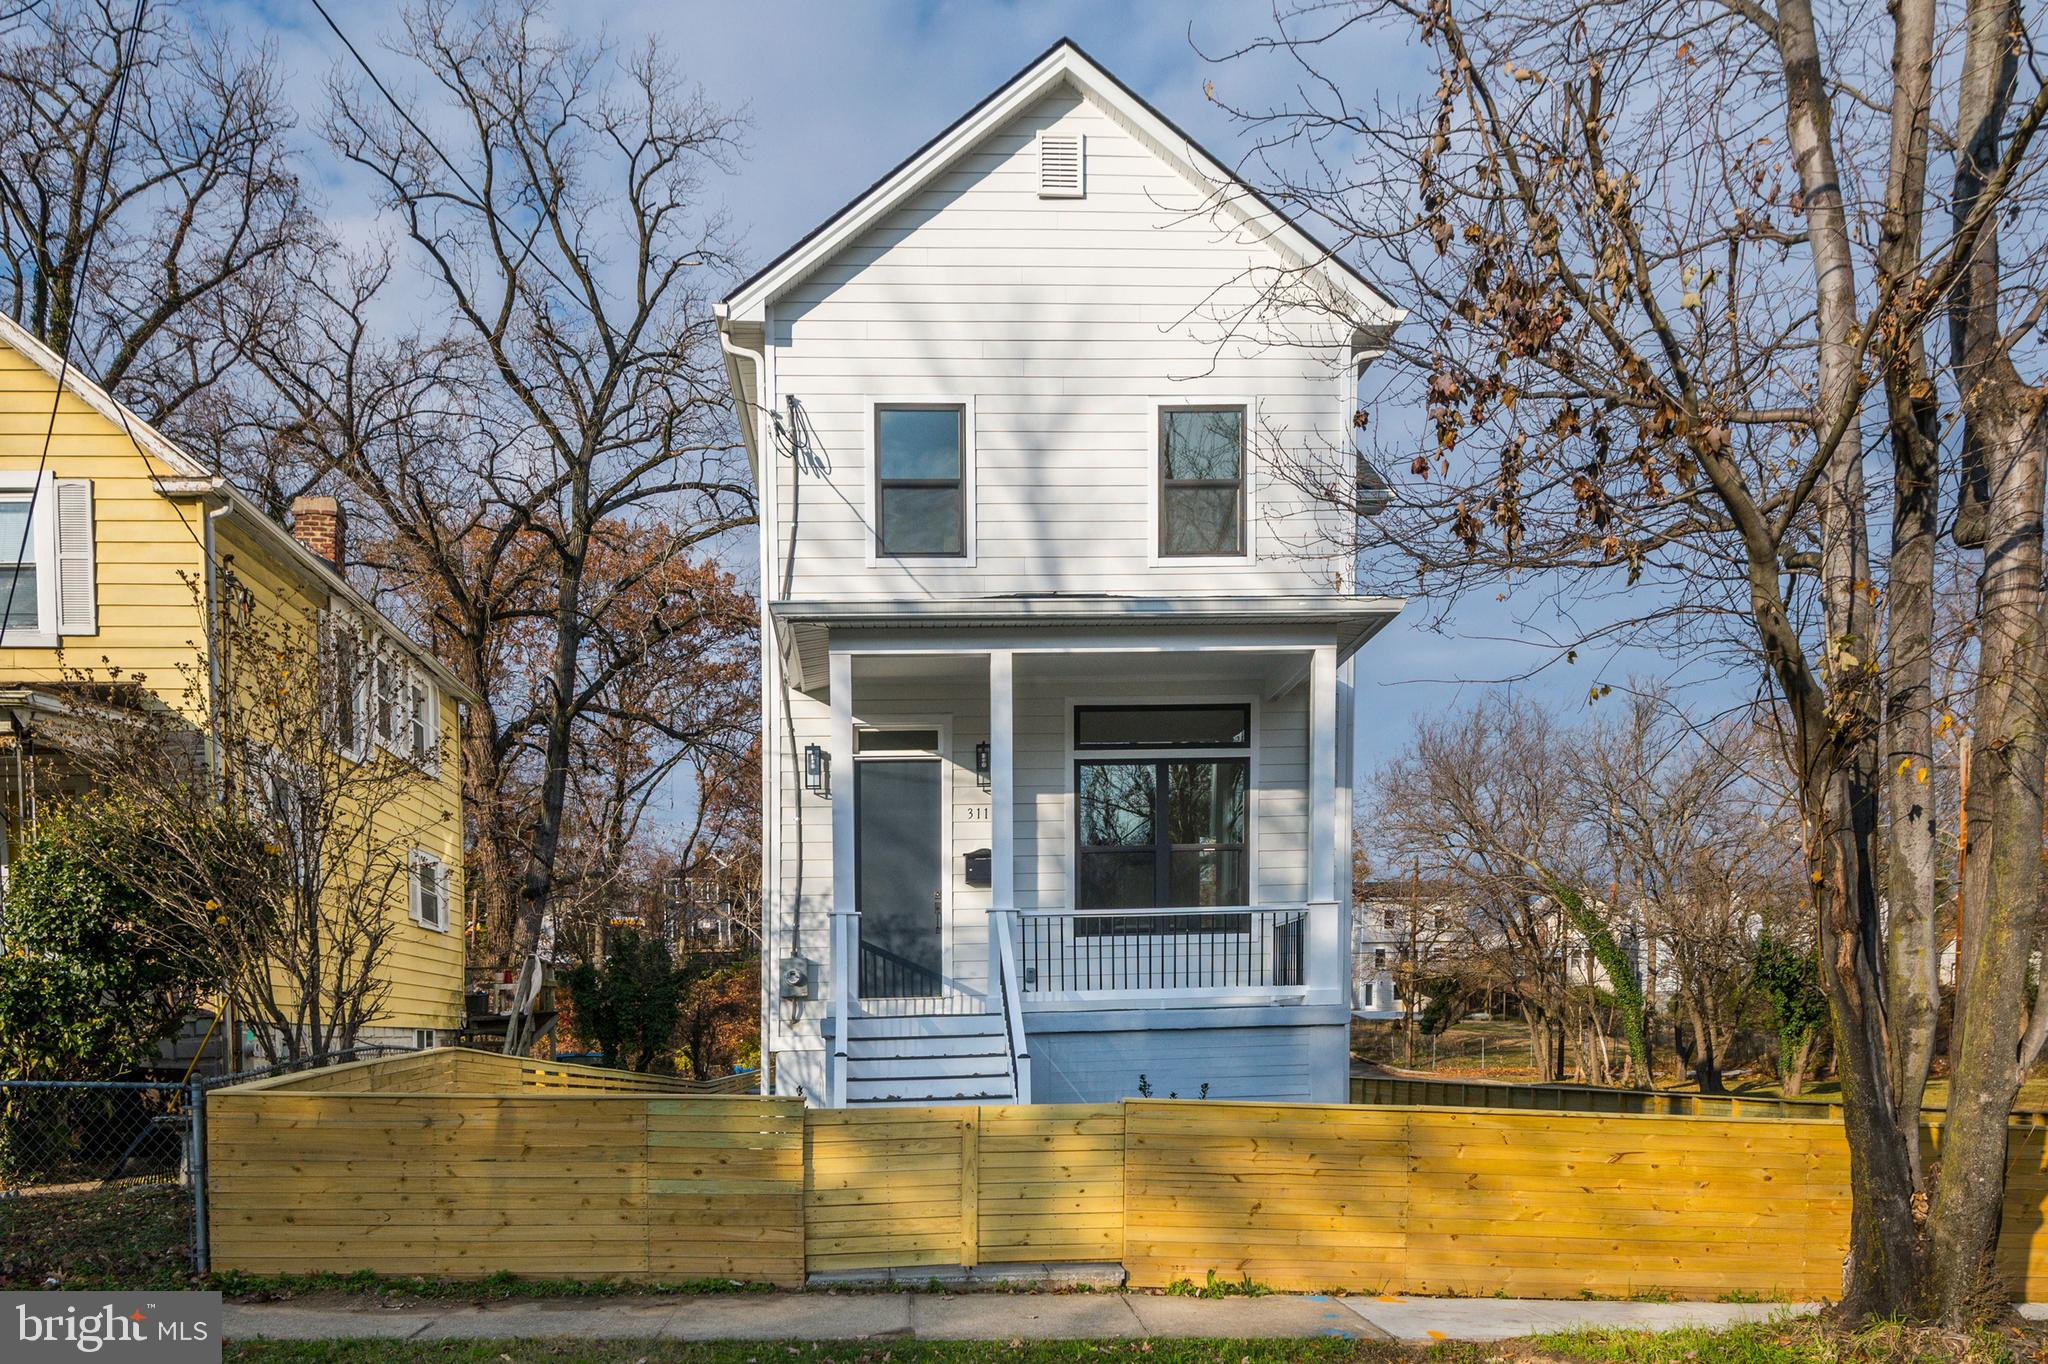 Completely renovated in 2019, 3110 Monroe St NE is a modern home featuring high ceilings, an open fl